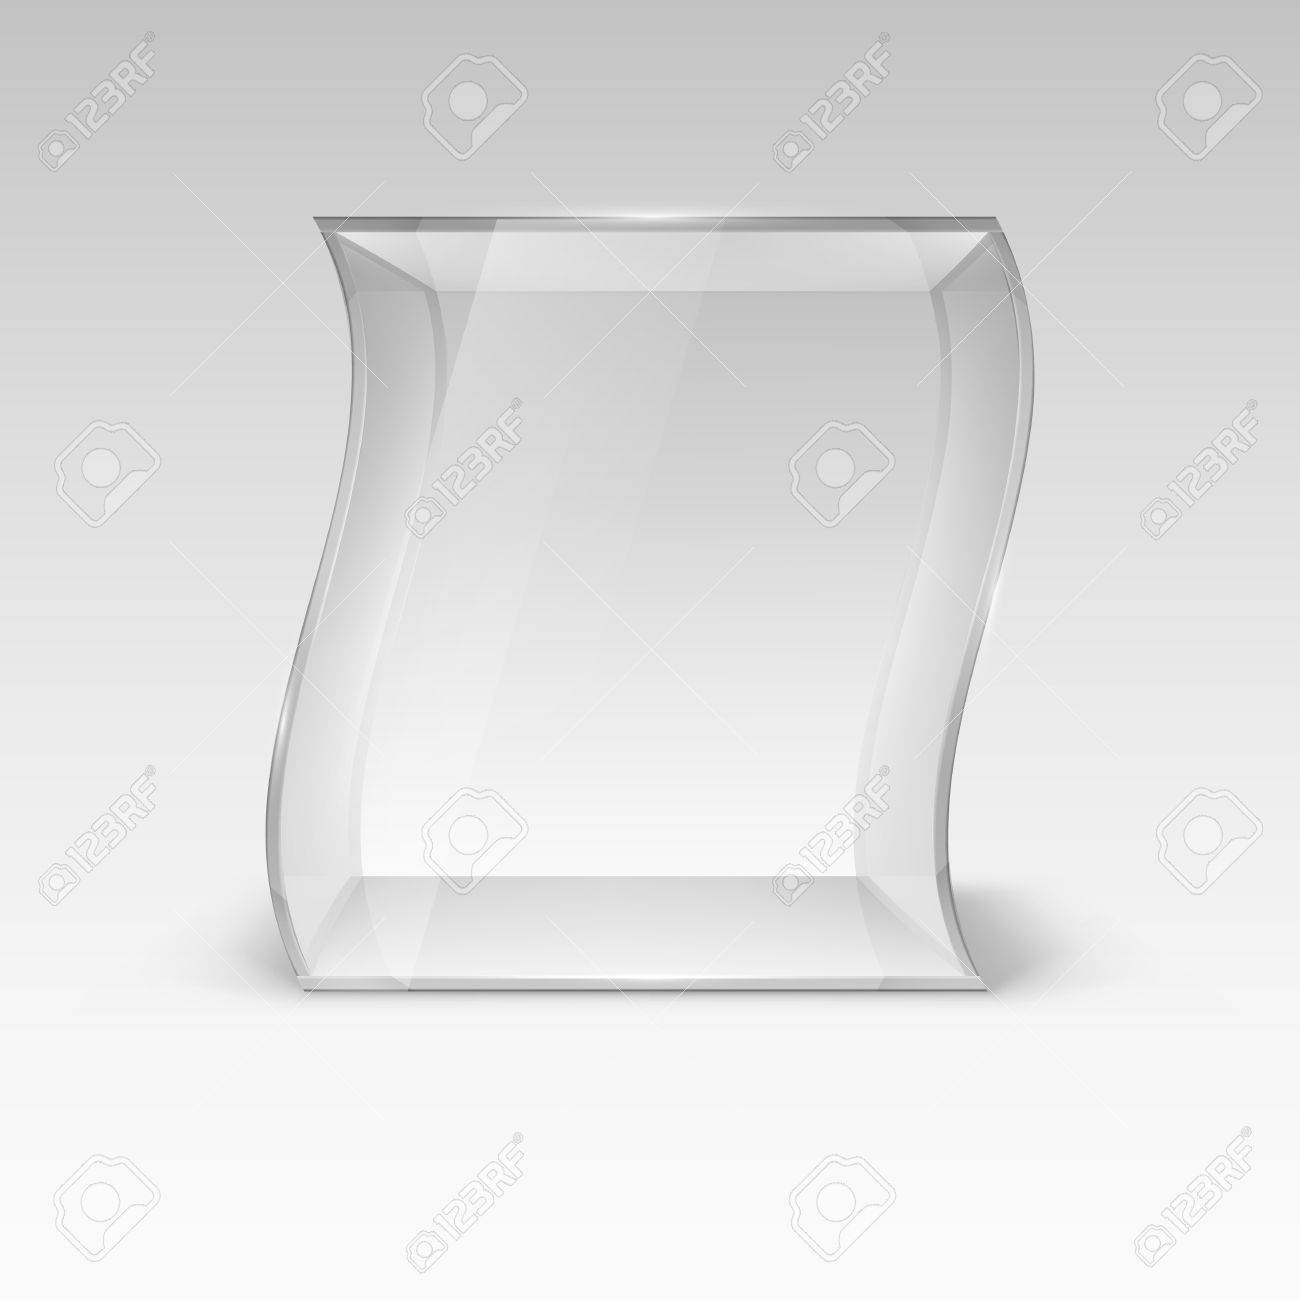 empty glass showcase in wave form for presentation royalty free